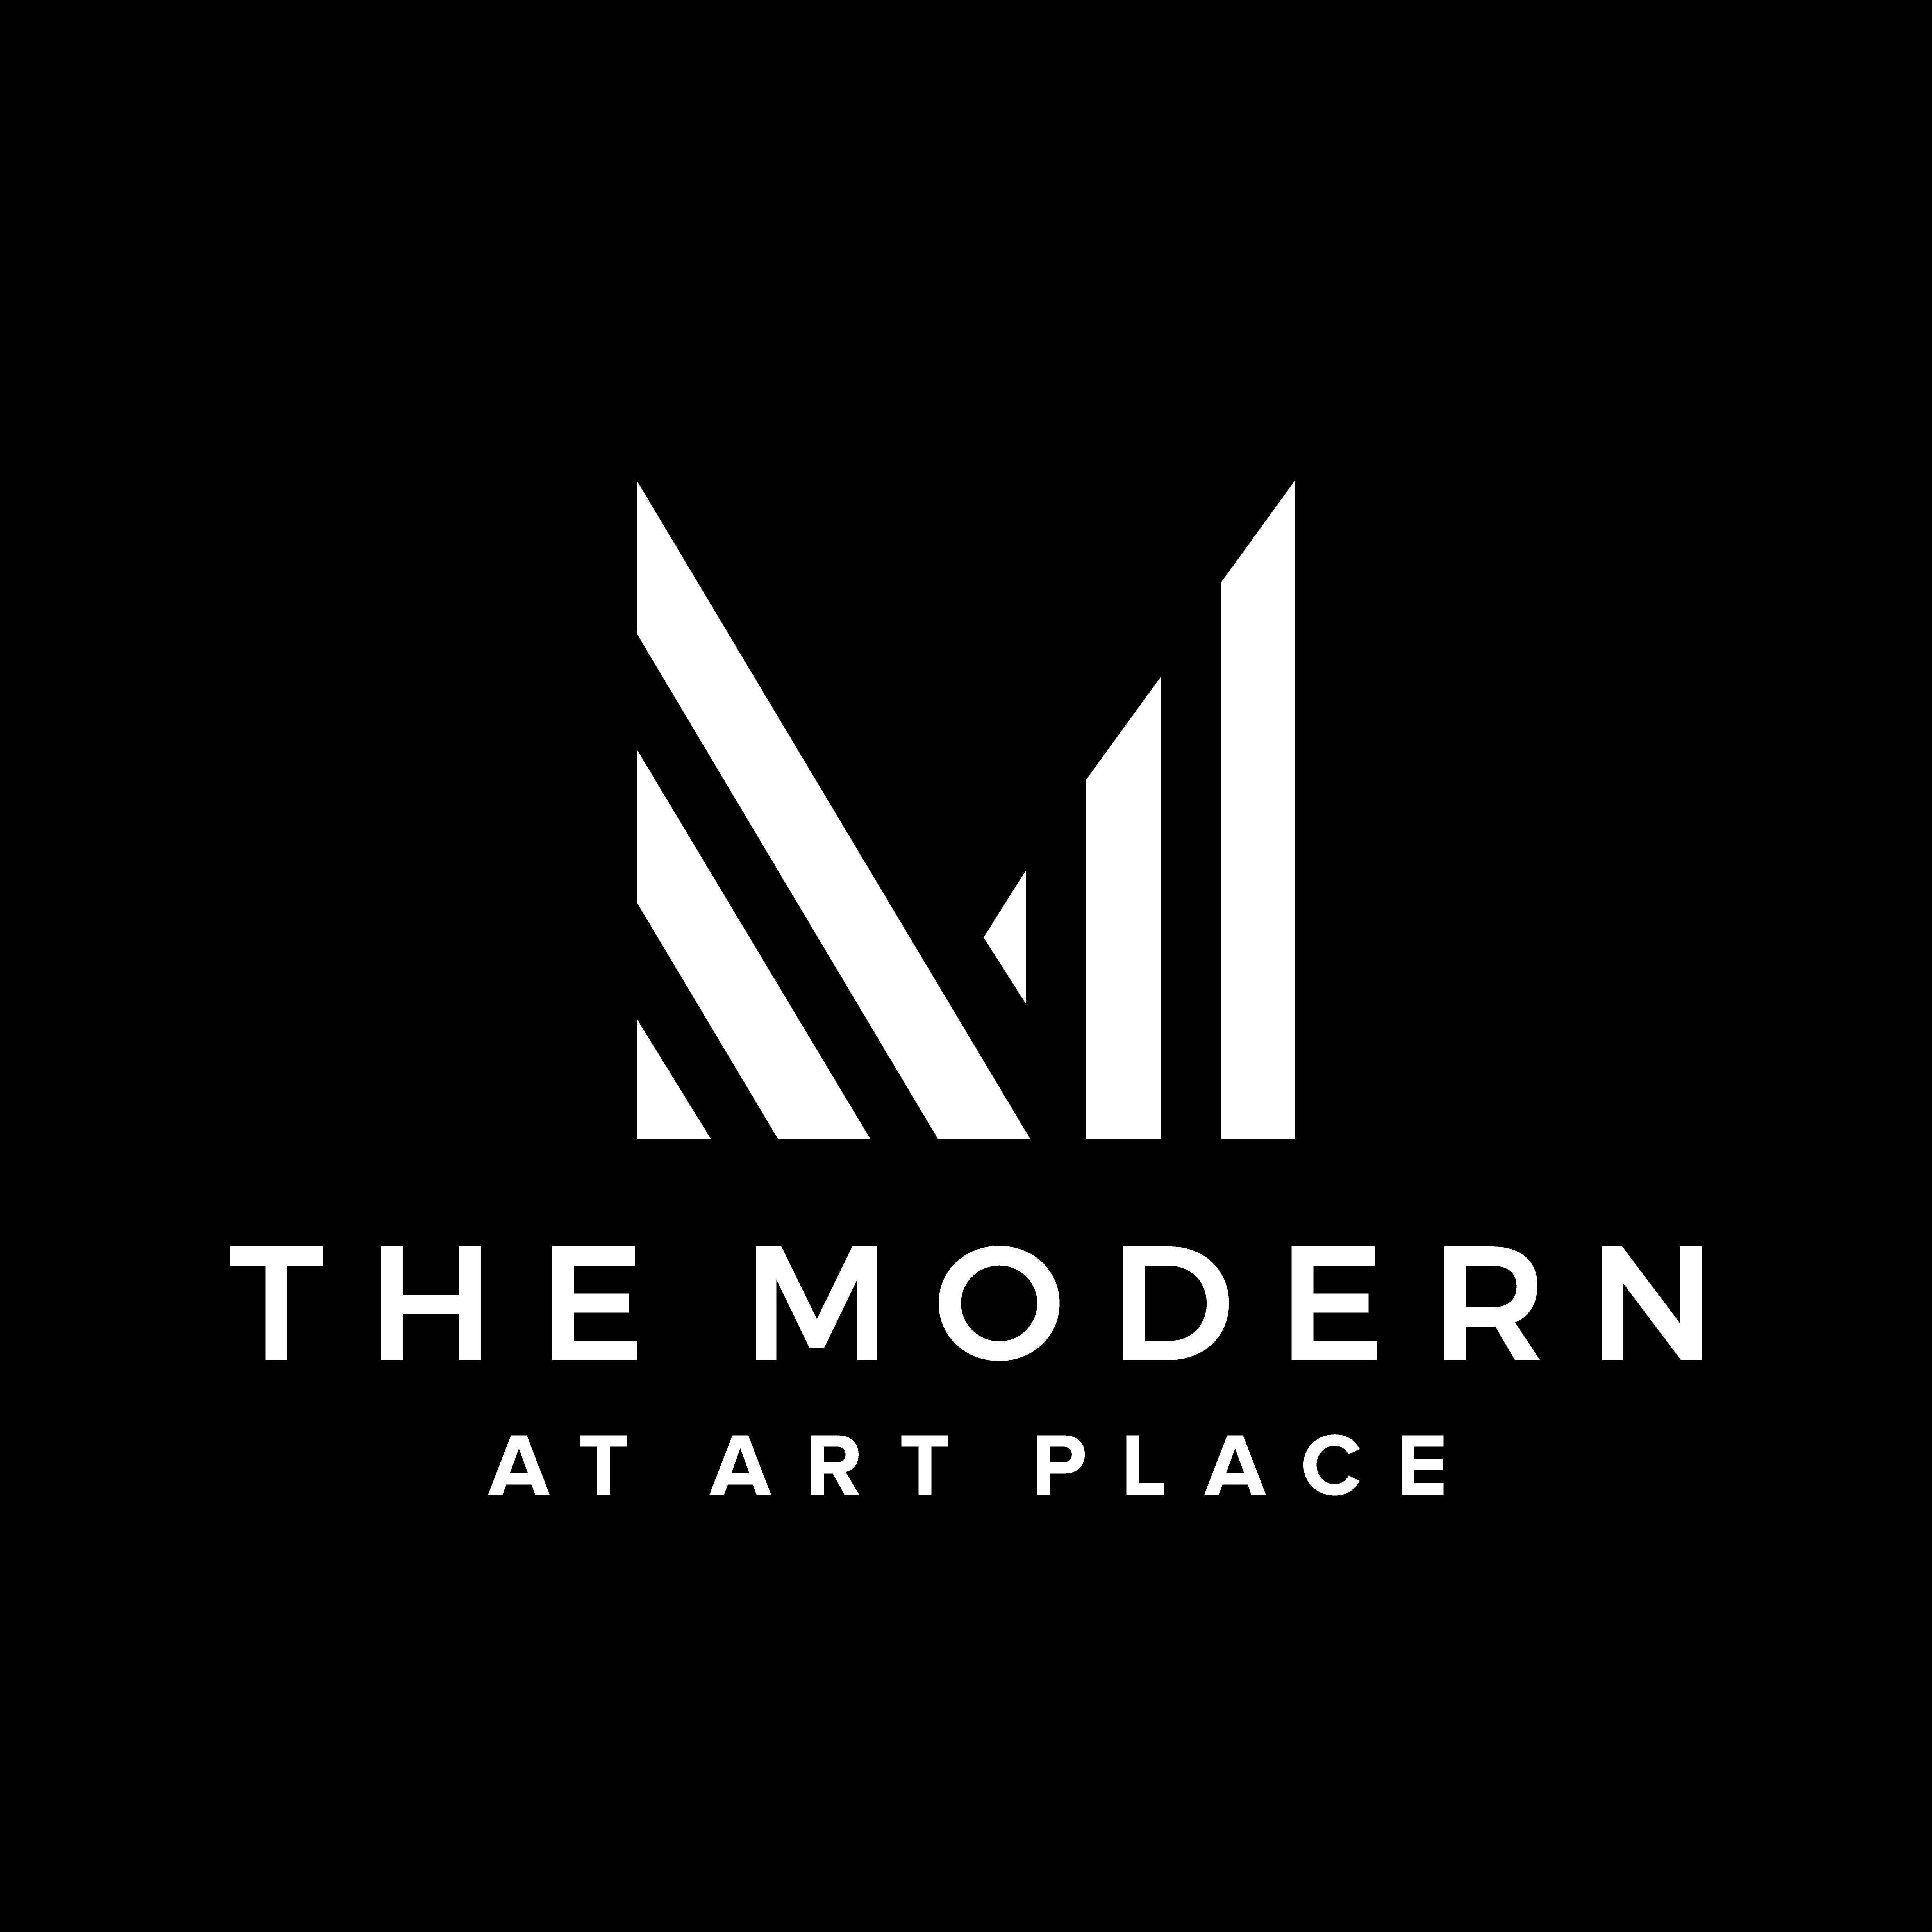 The Modern at Art Place